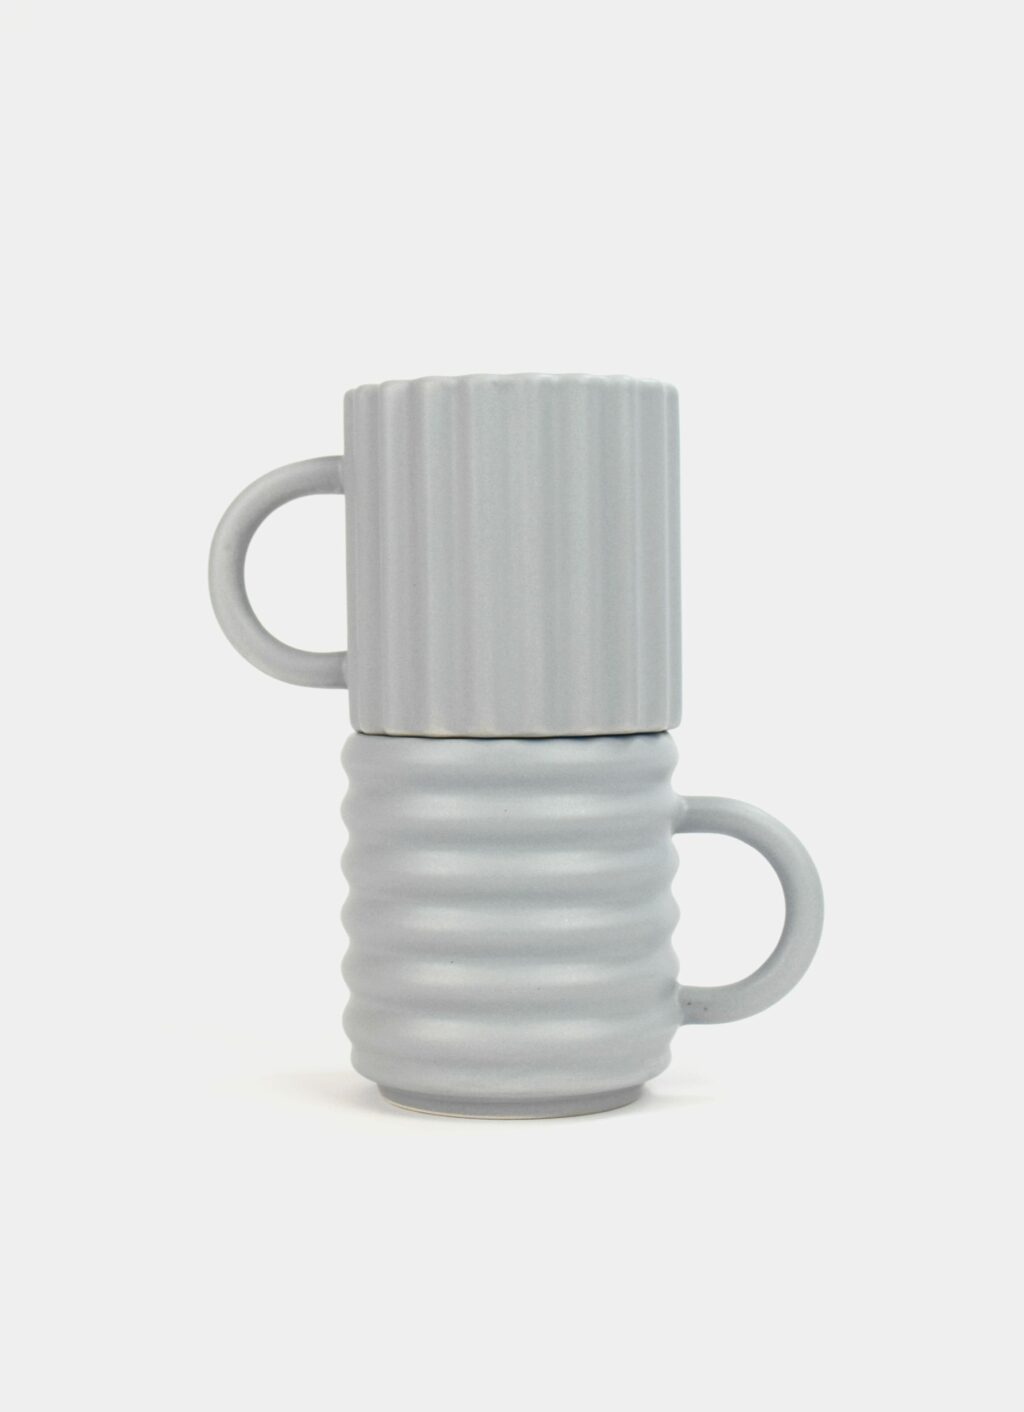 Form and Seek - Ripple Mugs - Set of Two - Grey